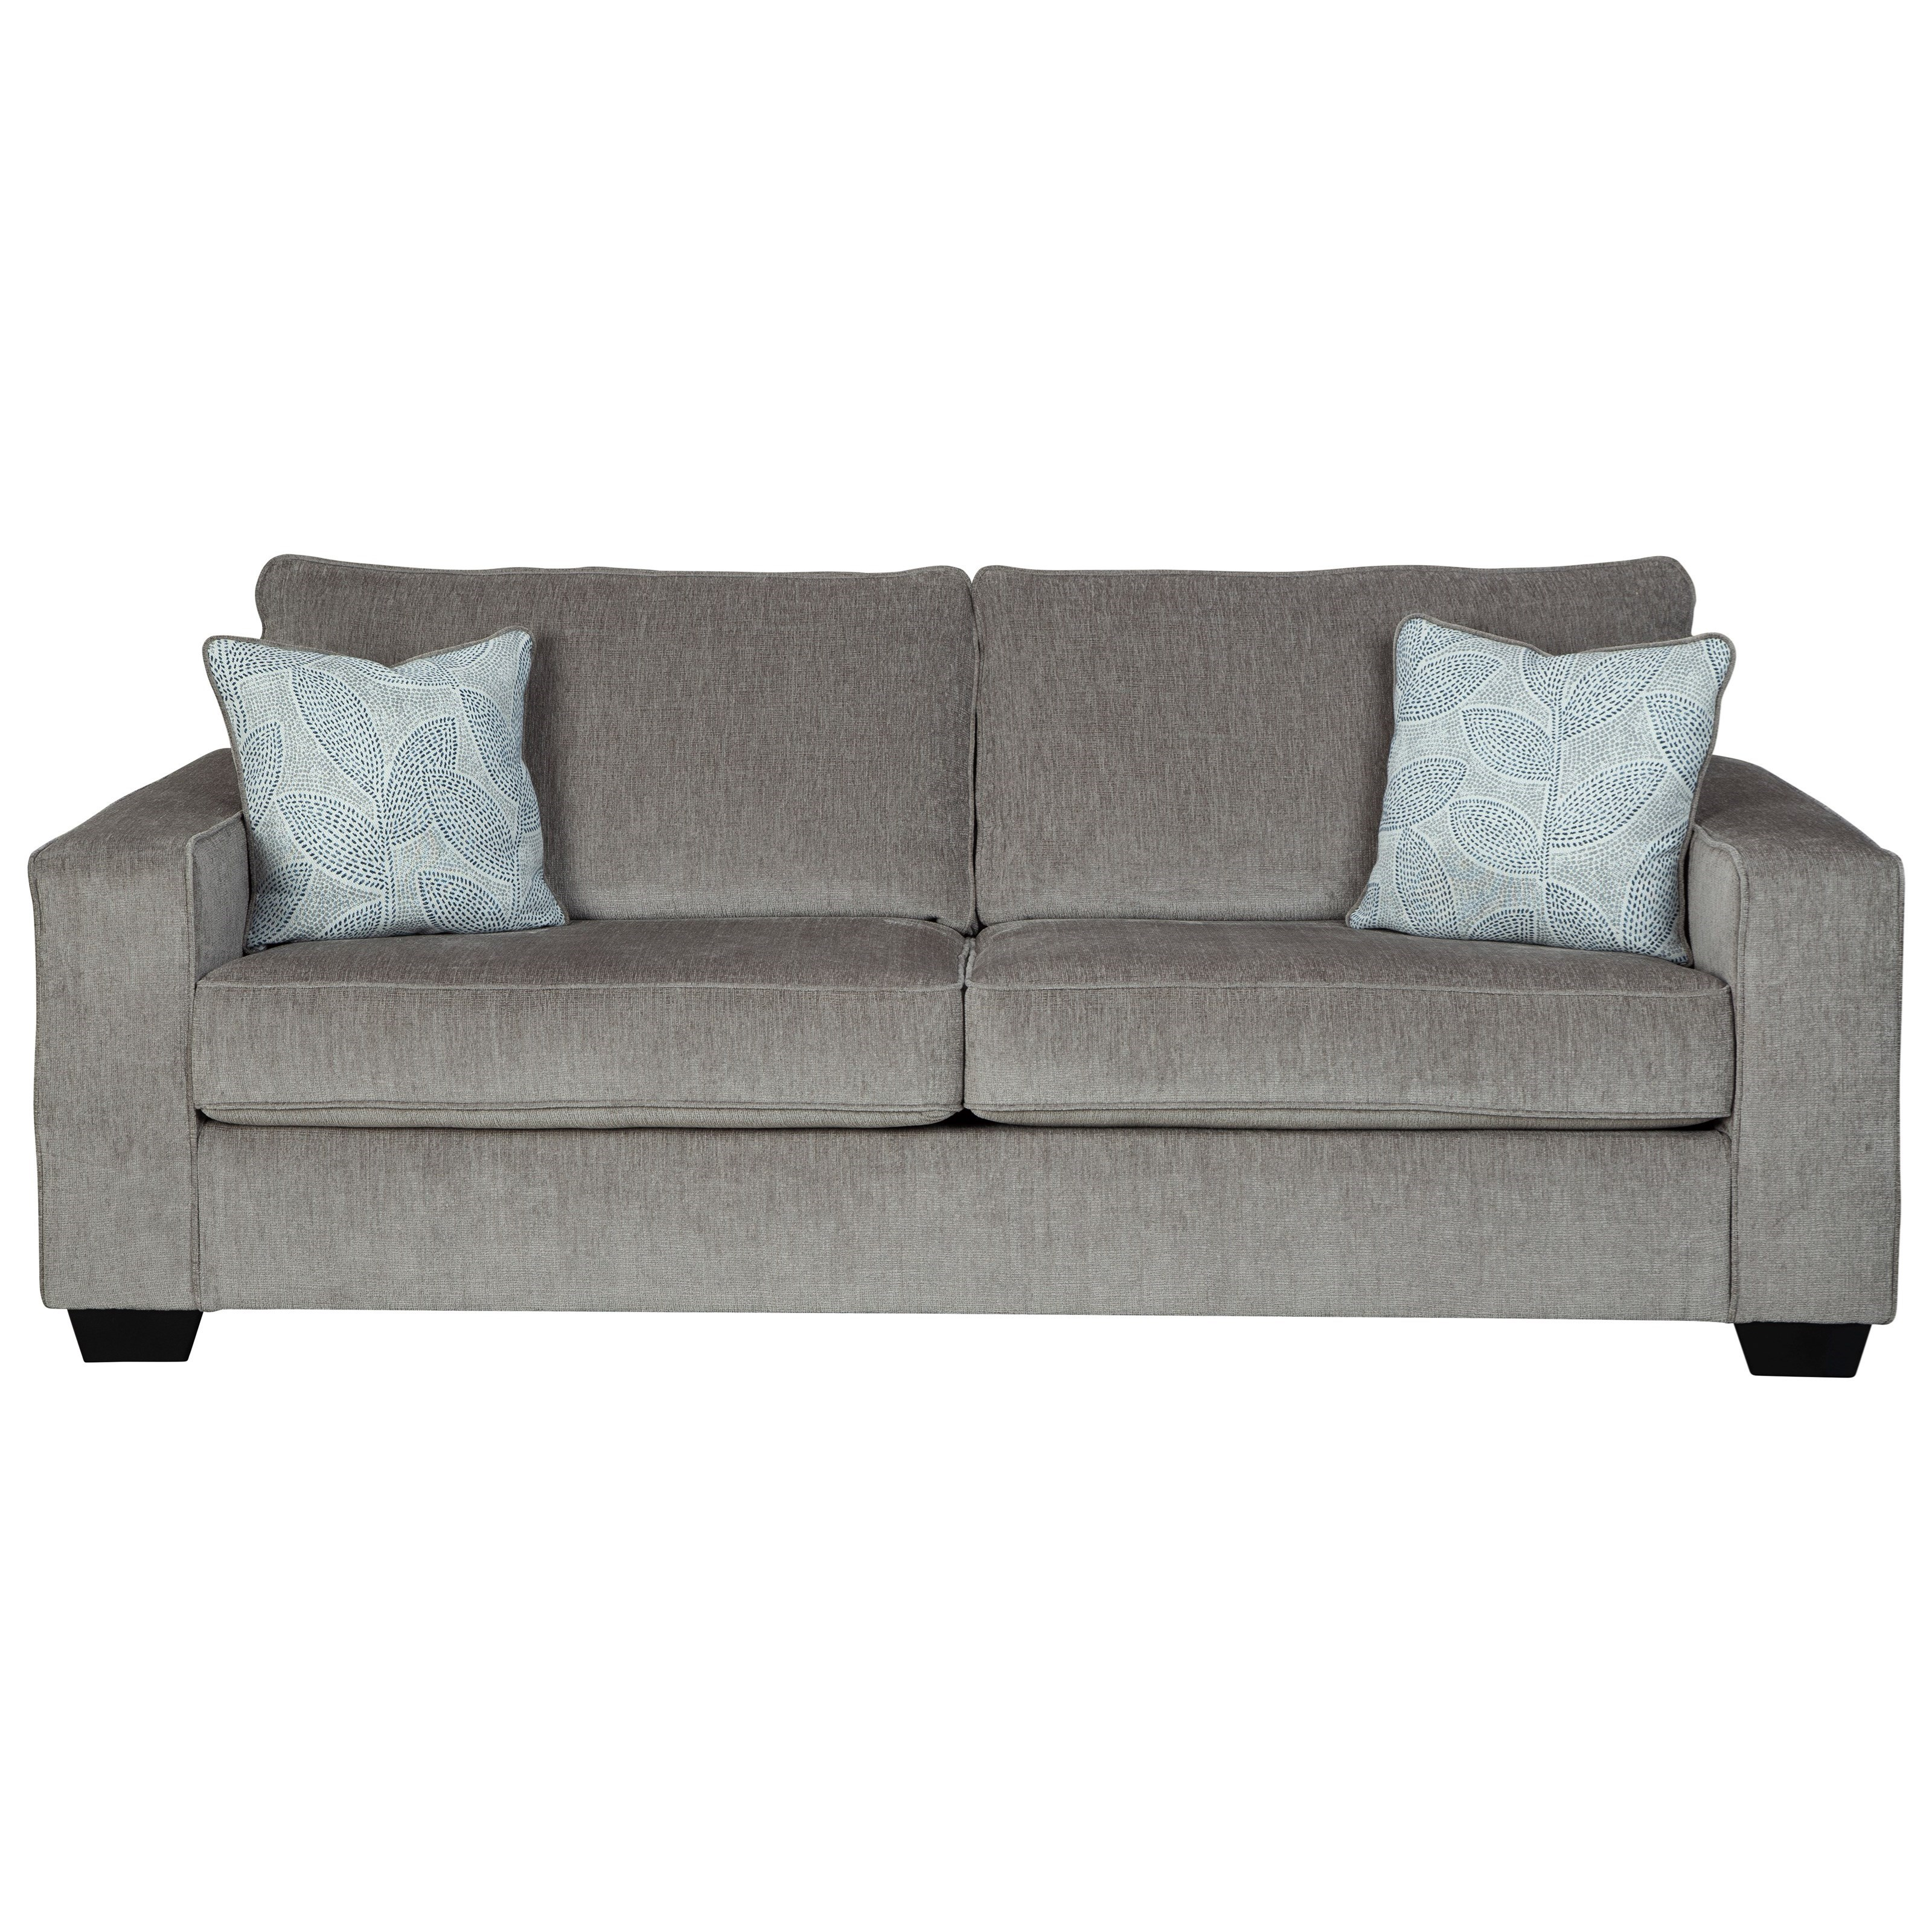 Altari Queen Sofa Sleeper by Signature Design by Ashley at Zak's Warehouse Clearance Center